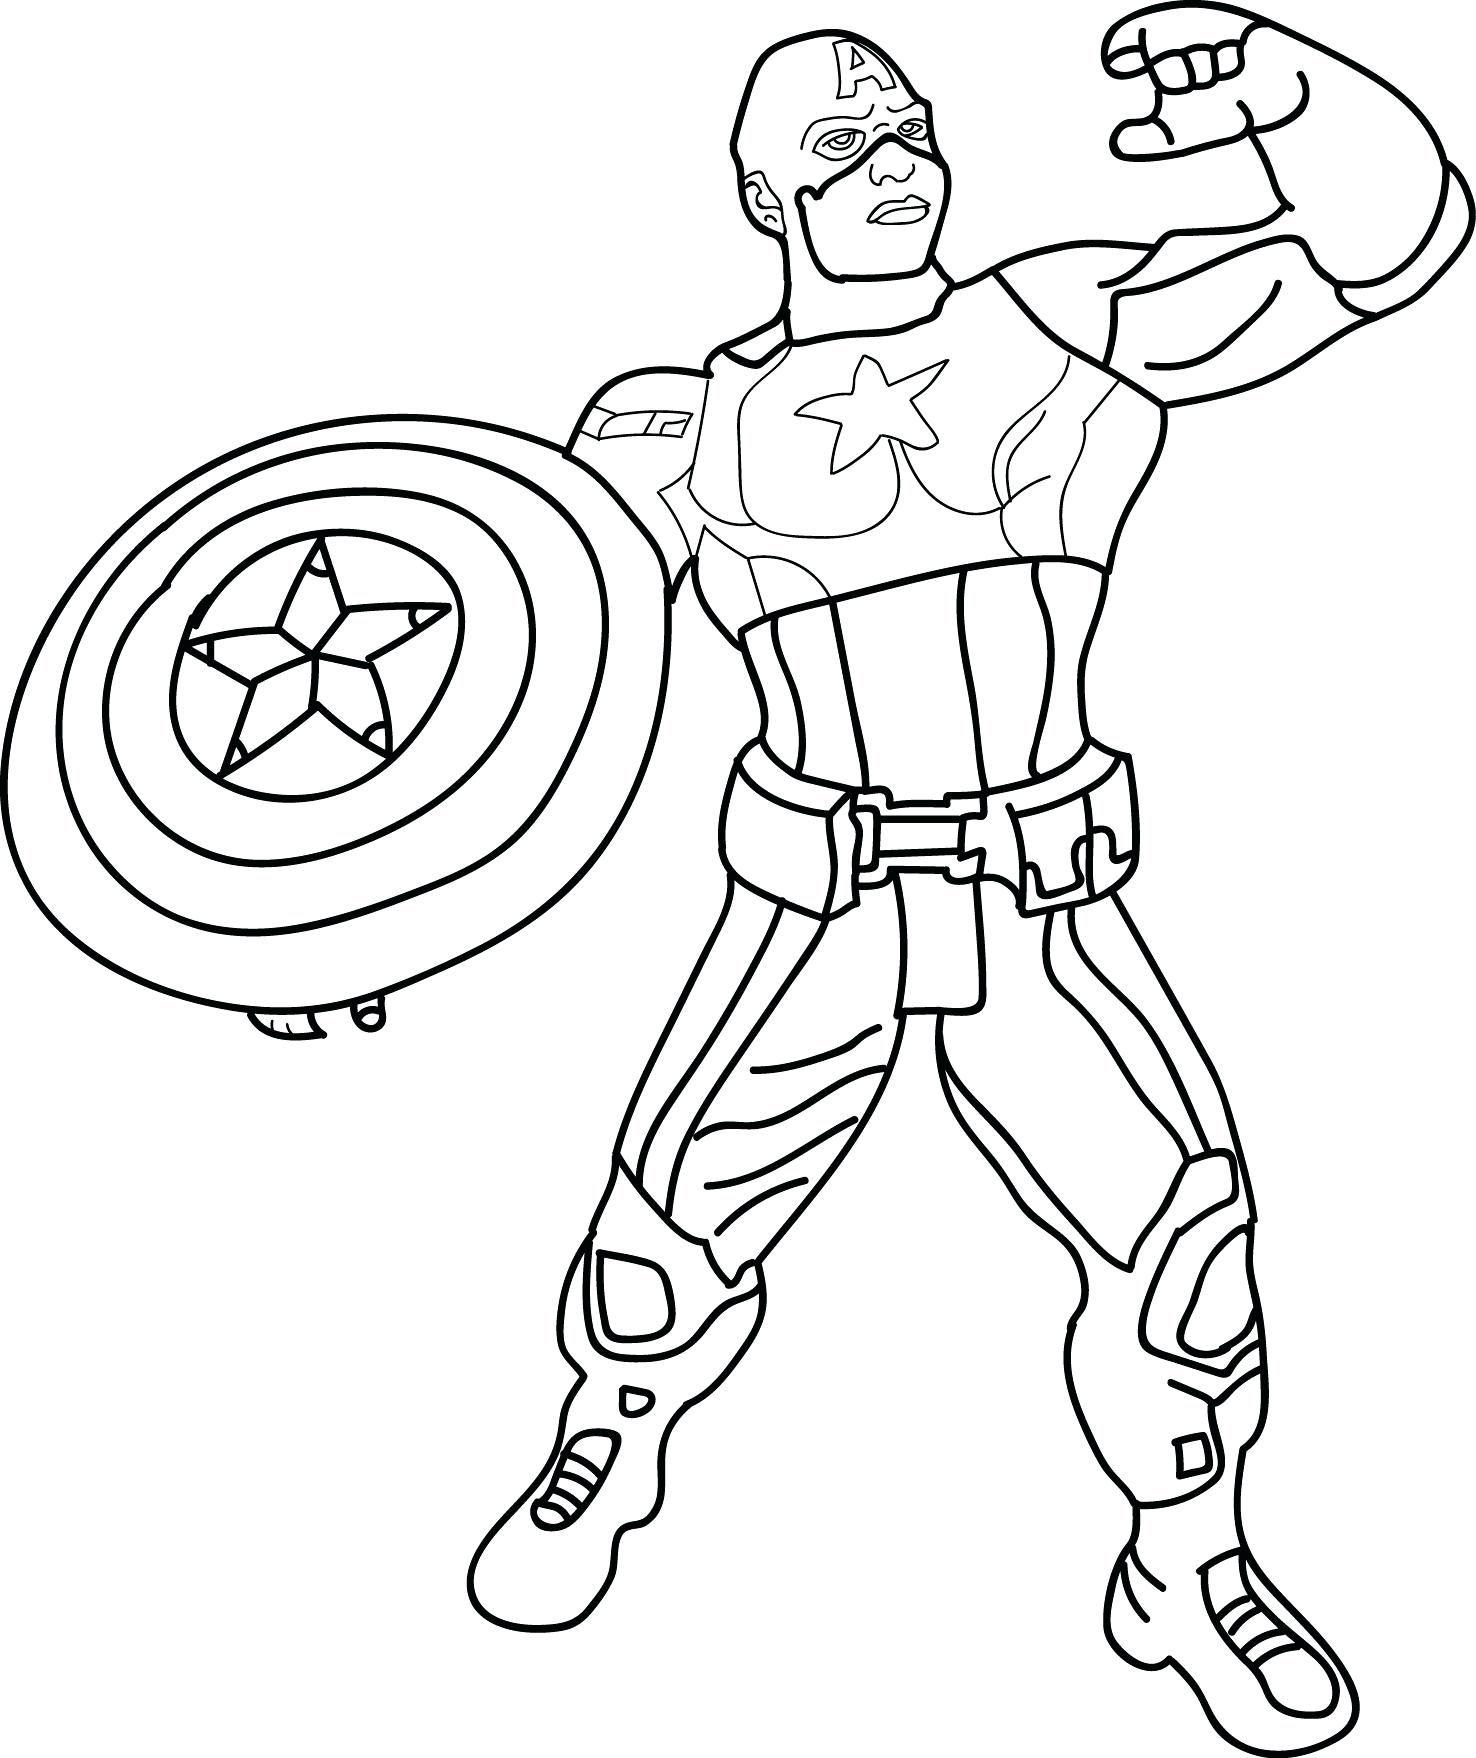 1476x1758 Coloring Coloring Pages Captain America